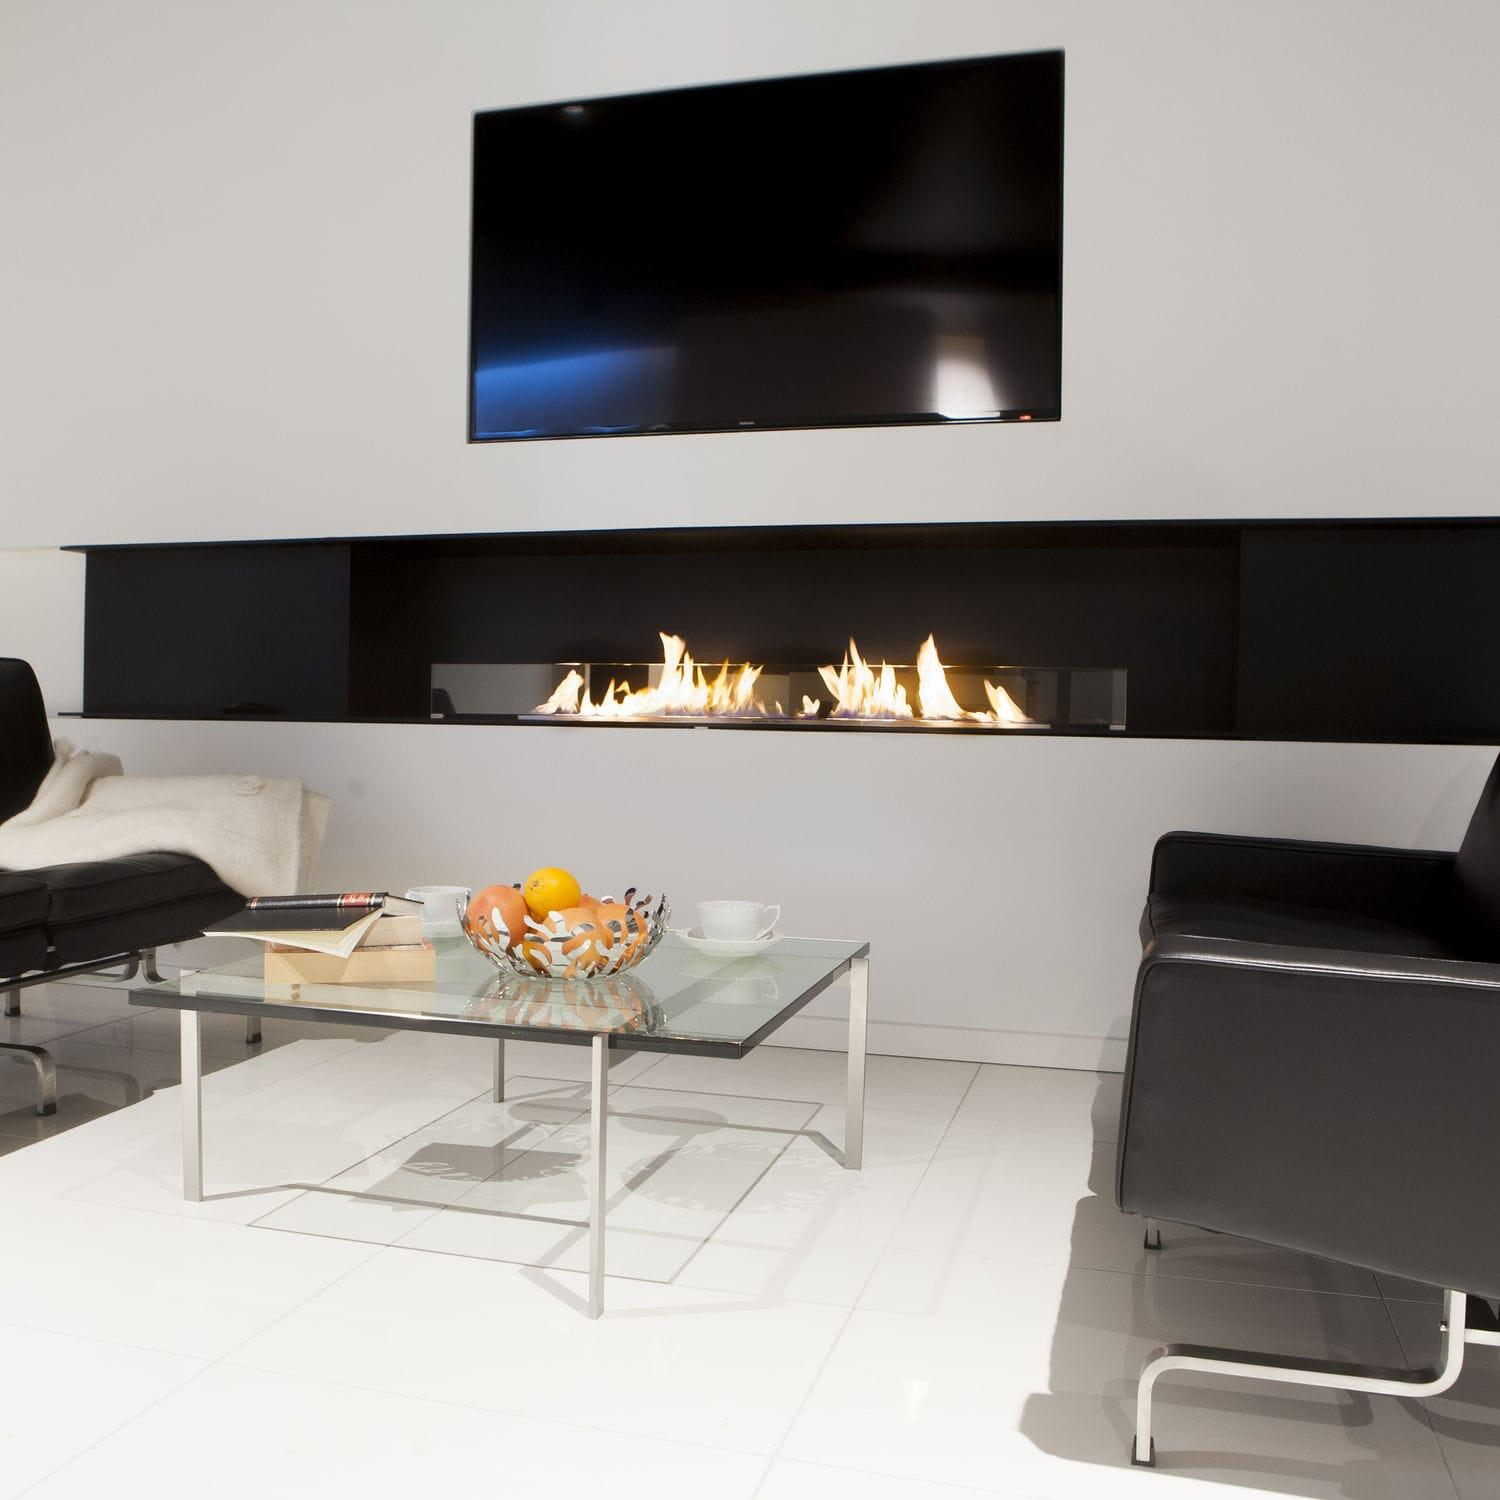 30 Inch Real Fire Indoor Intelligent Smart Ethanol Burning Fireplace